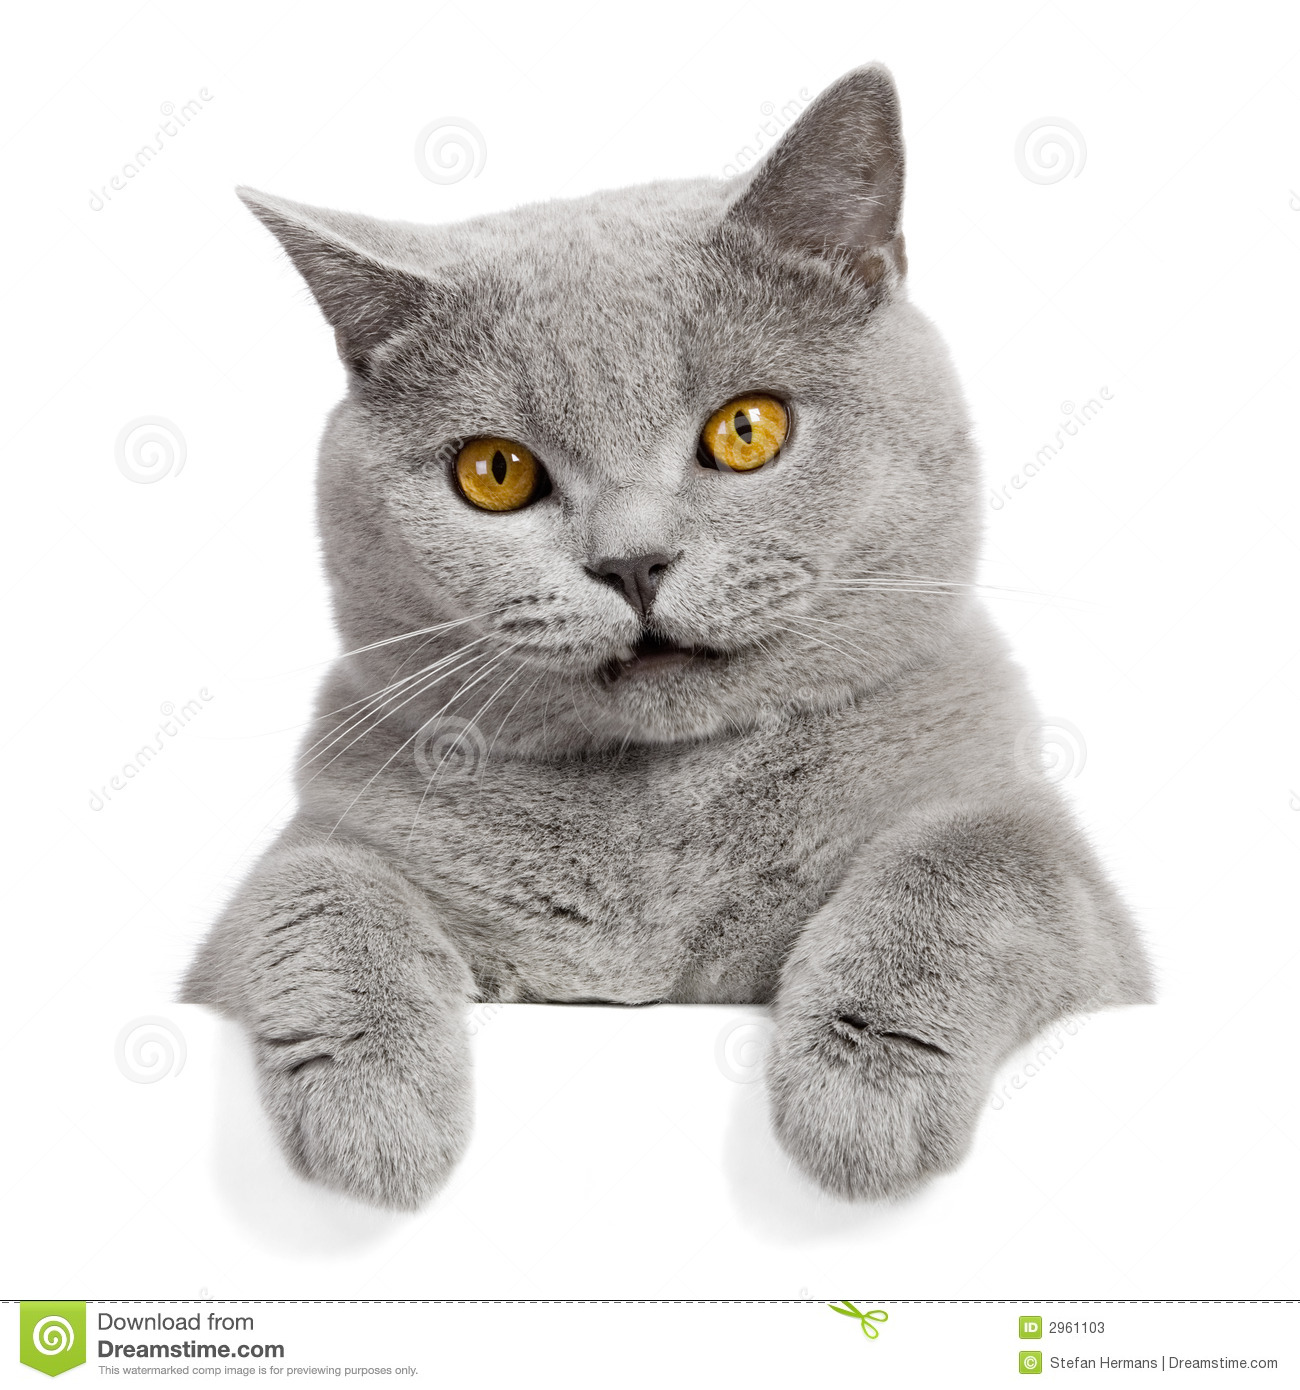 Lovely grey cat banner stock image. Image of banner ...